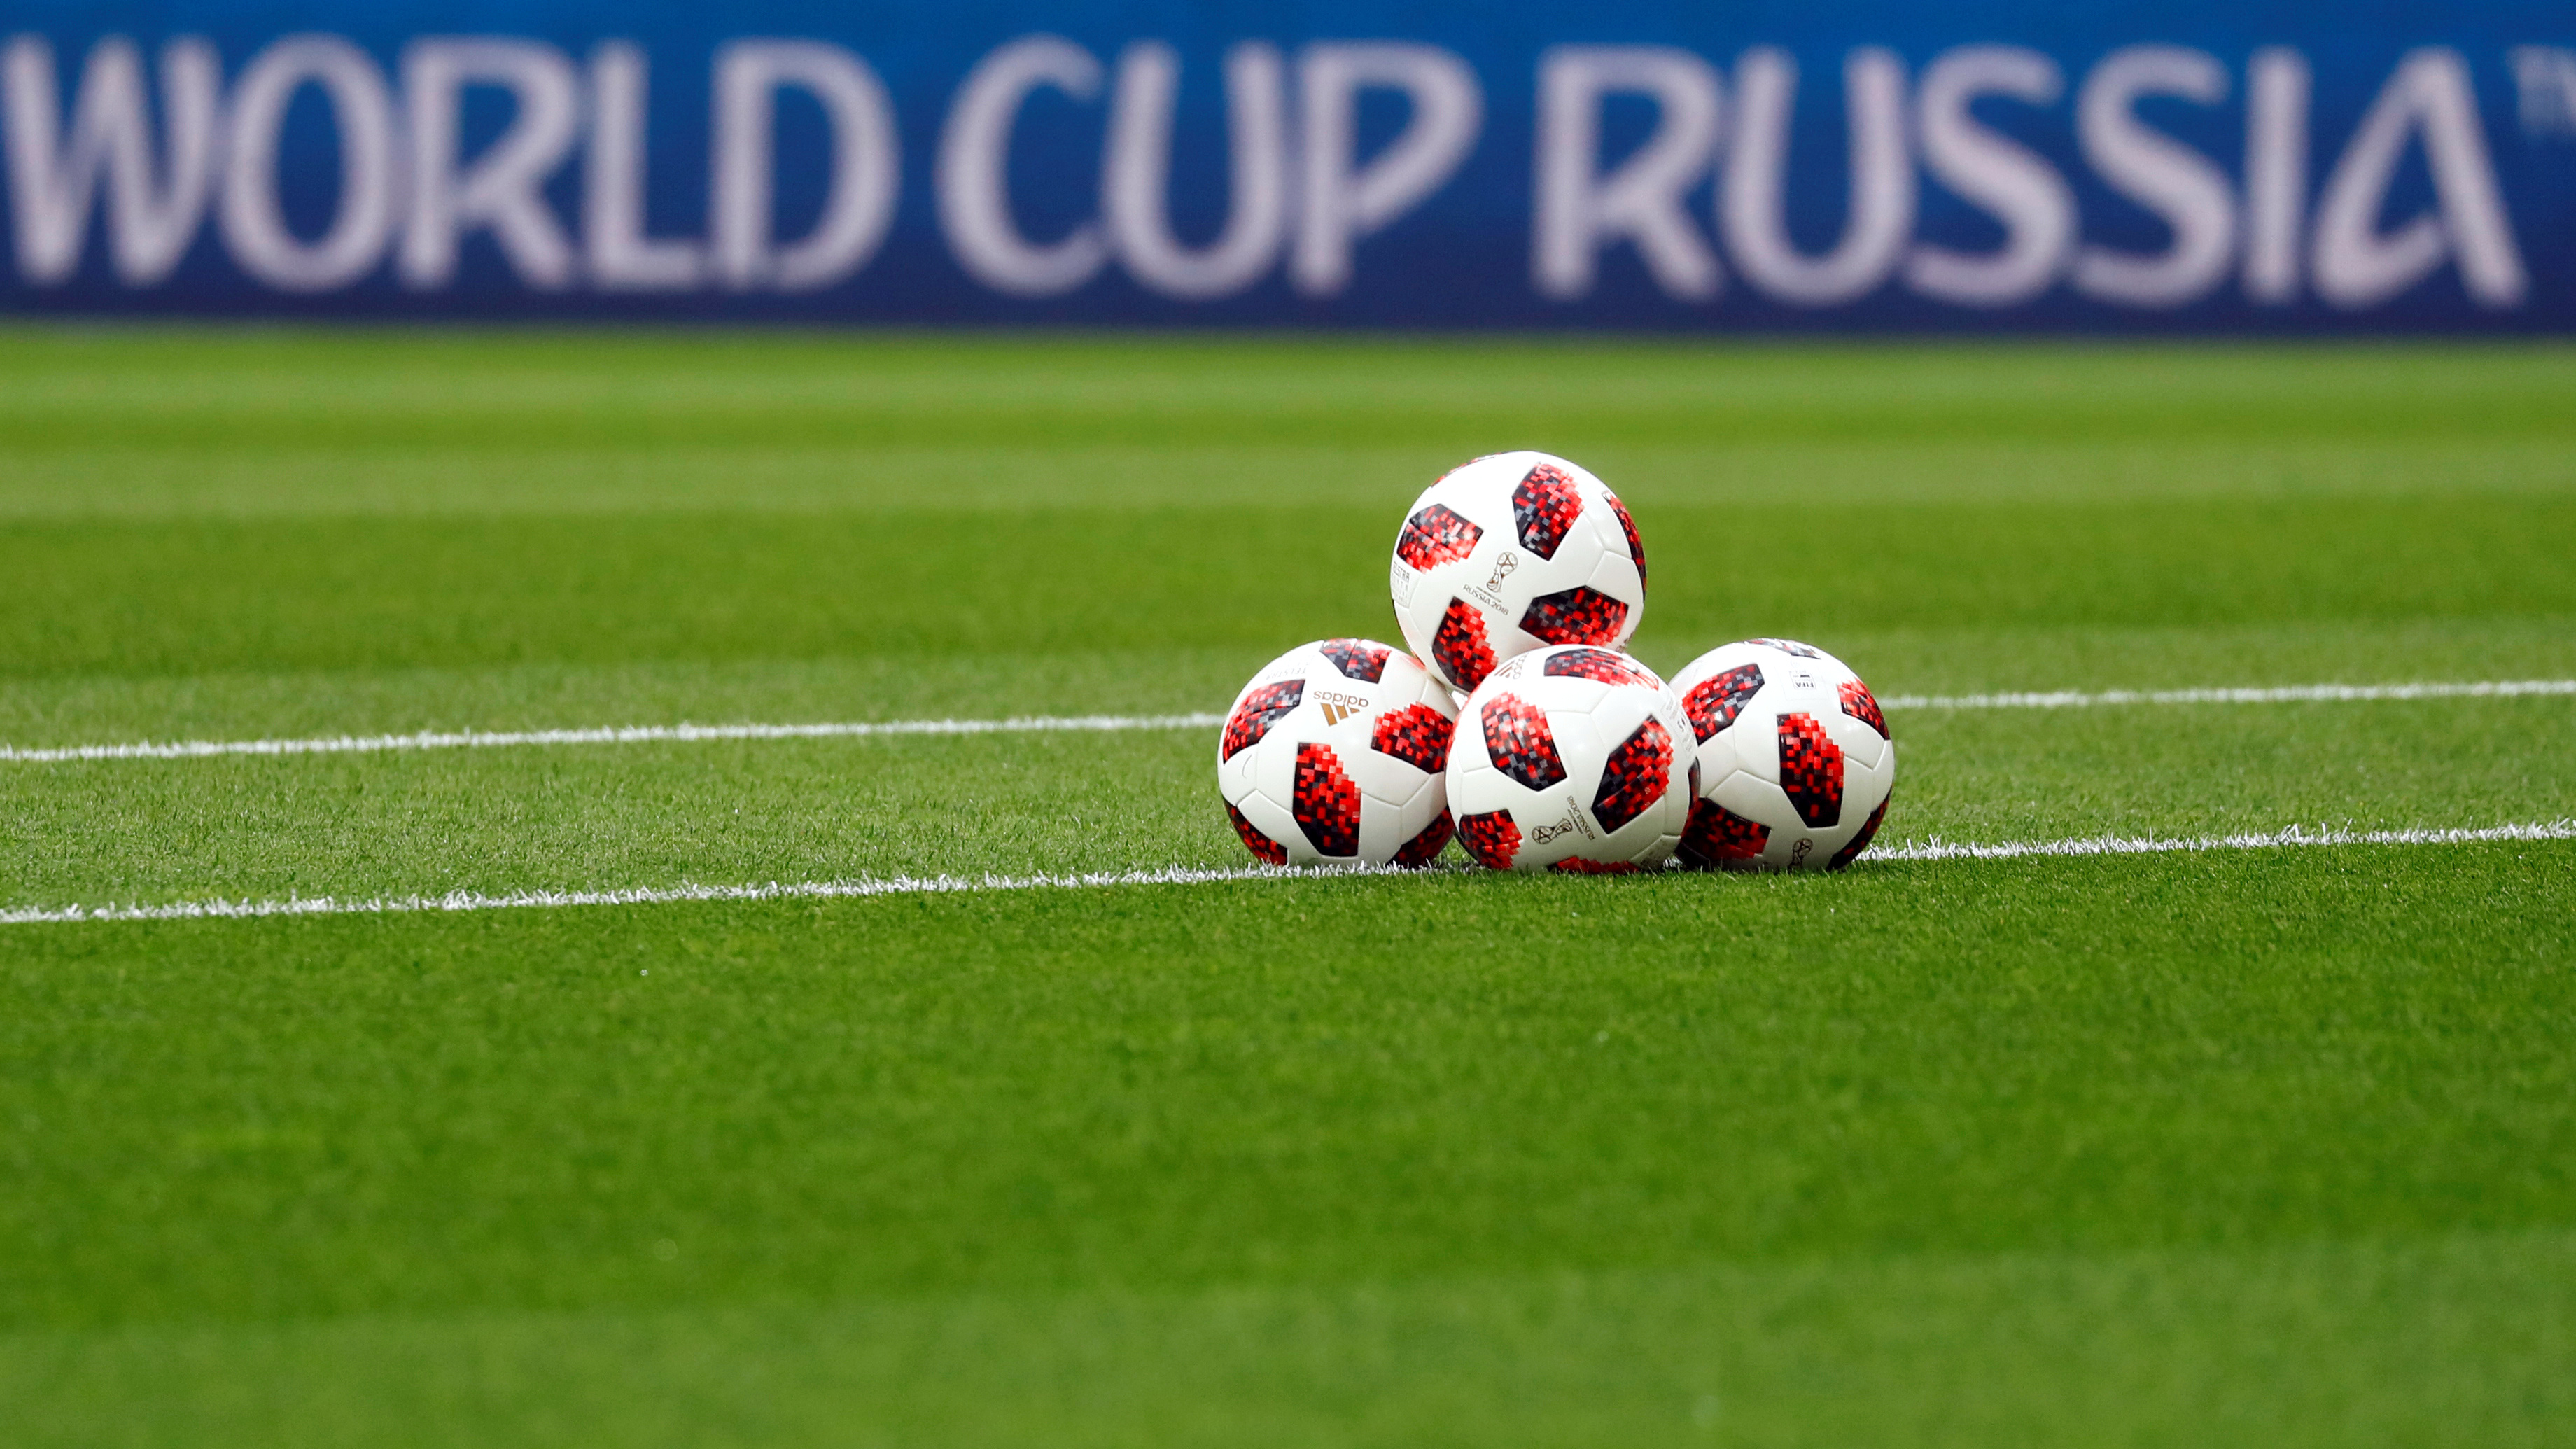 Soccer Football - World Cup - Round of 16 - Colombia vs England - Spartak Stadium, Moscow, Russia - July 3, 2018 General view of balls on the pitch before the match